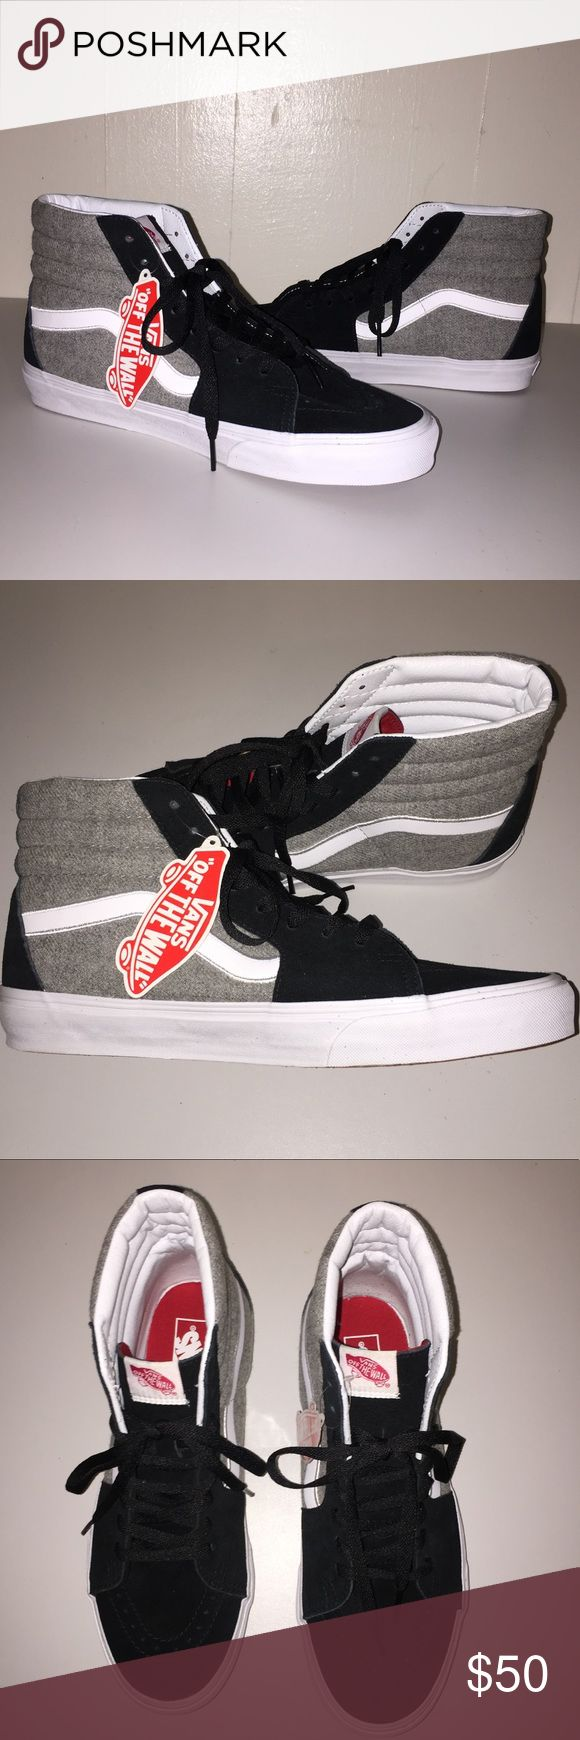 NWT Vans Men's SK8-Hi Wool Sport Black/Gray Cool gray wool and black suede shoes.  Great neutral color combination will match any outfit. Box is a bit torn and smashed. PRICE IS FIRM. Vans Shoes Sneakers